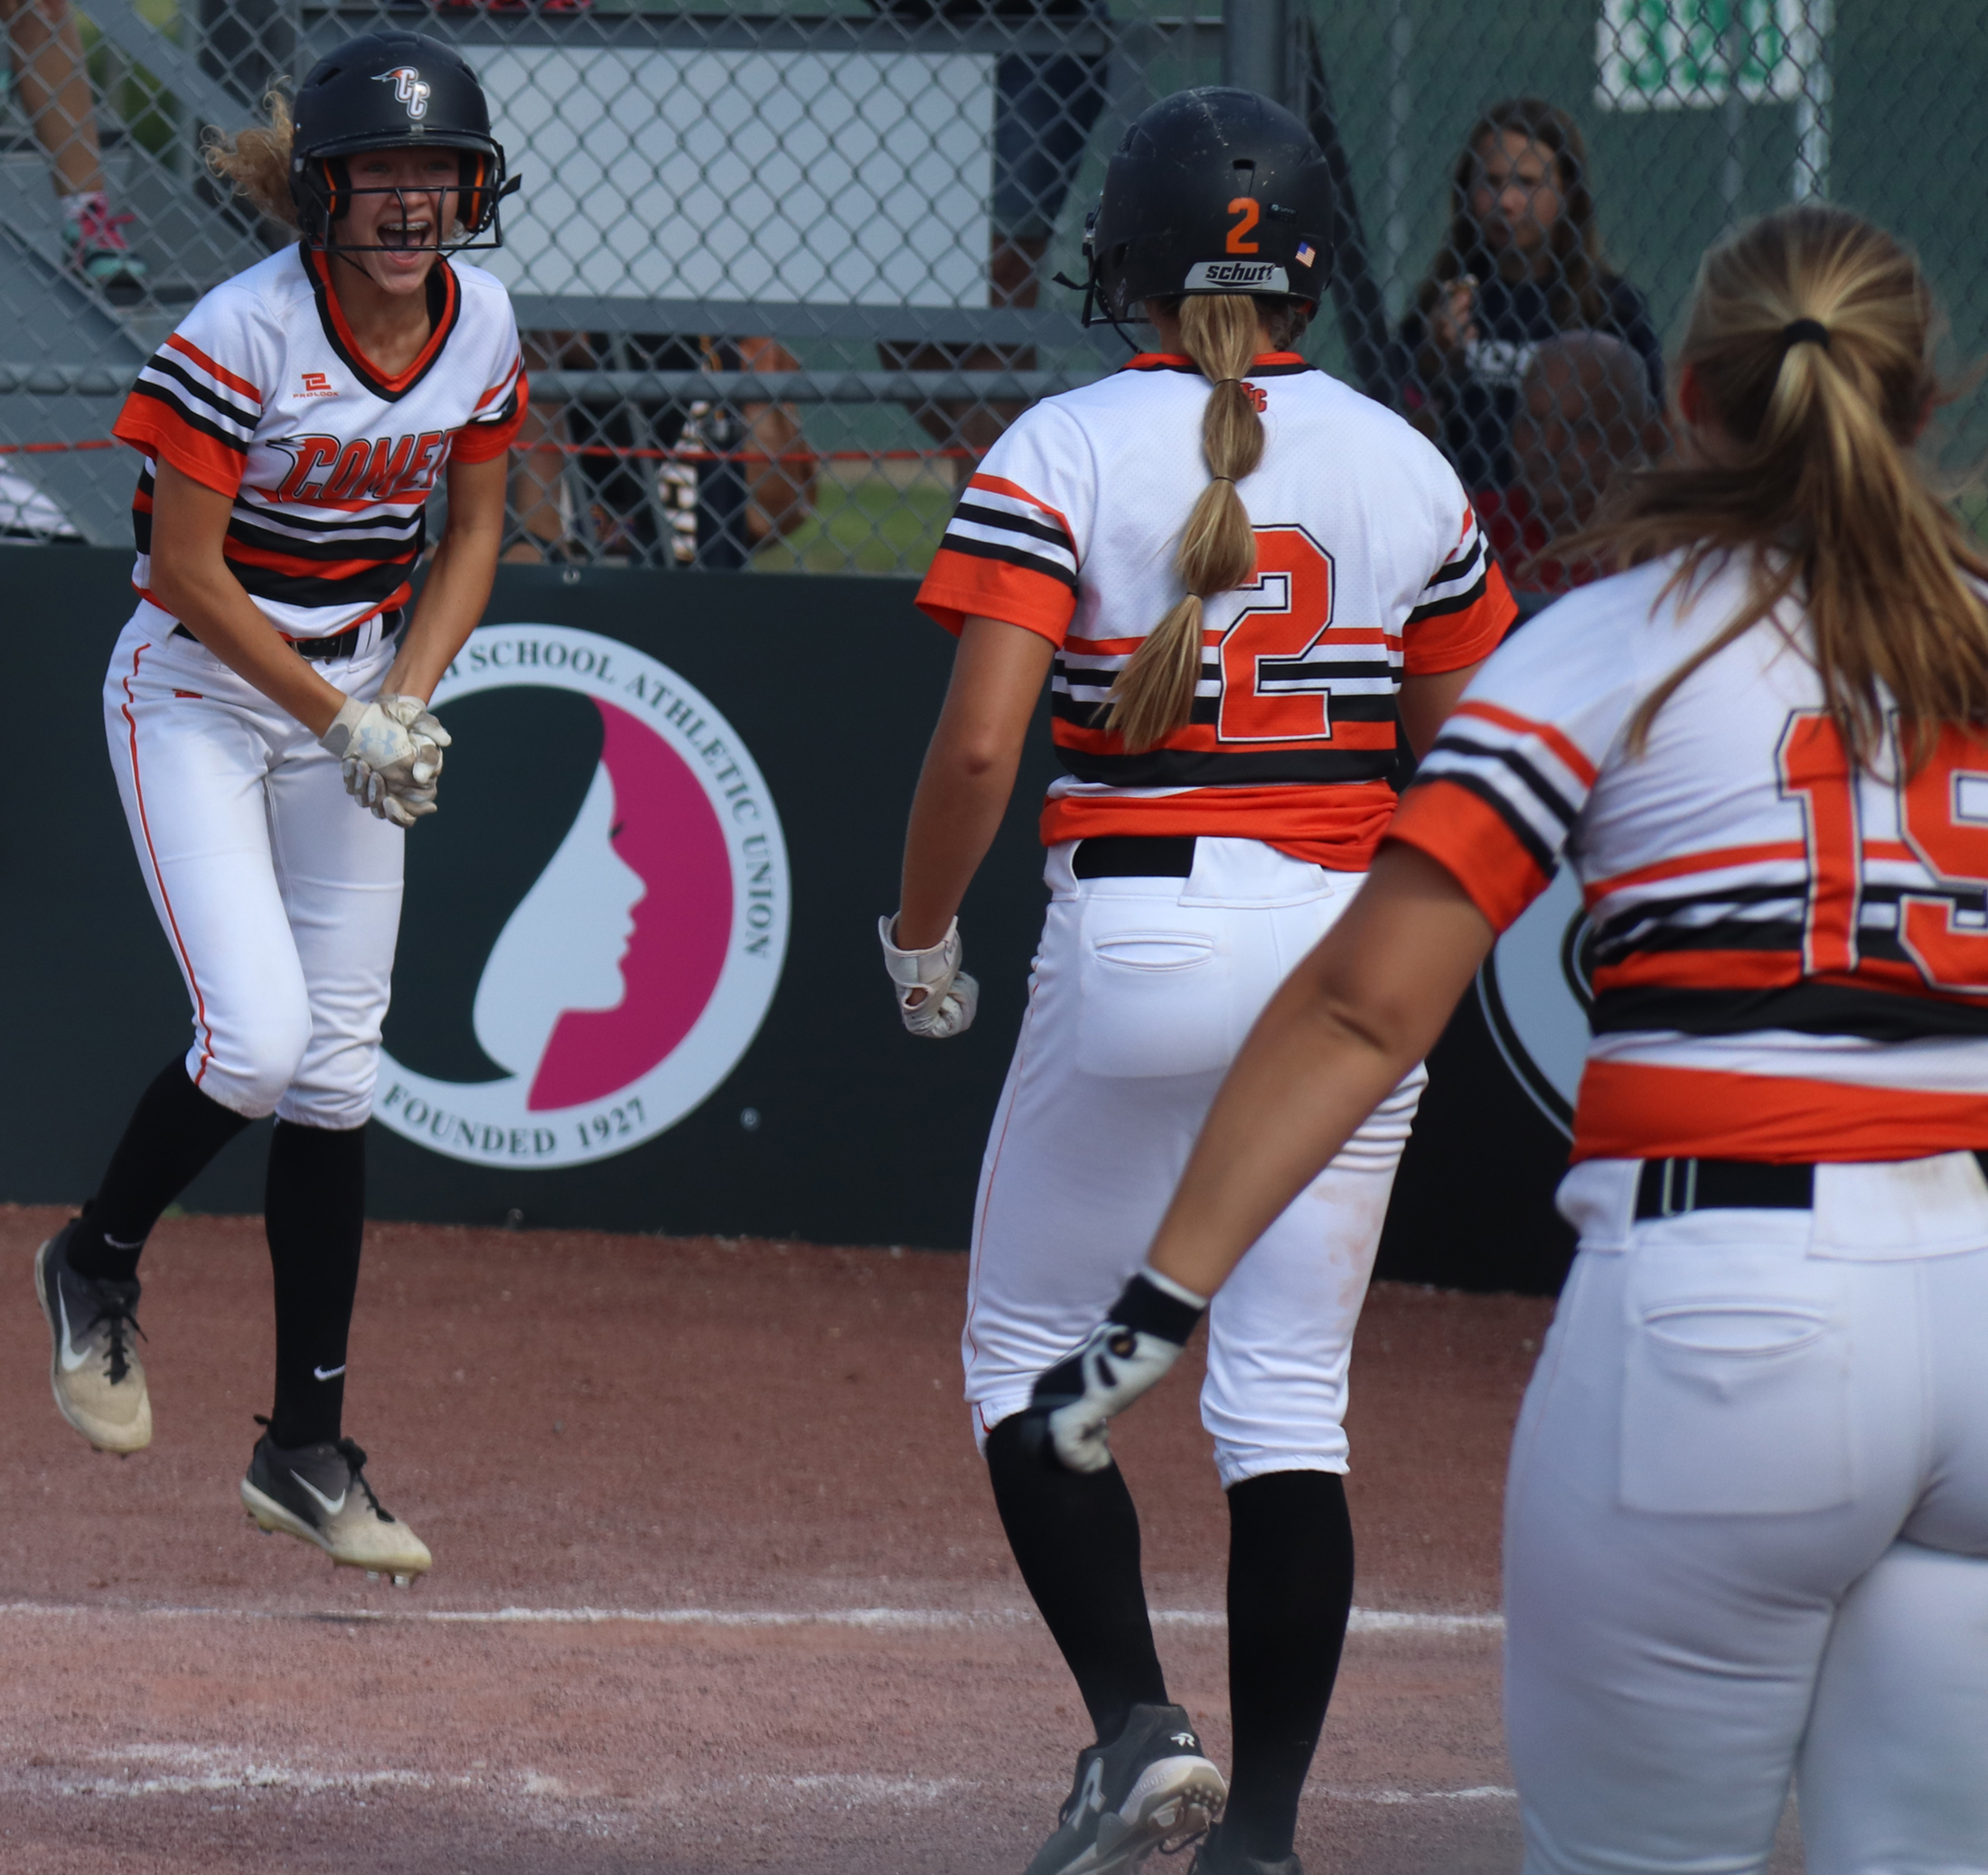 Comets 'walk' into state semis with 4-3 win over Fillies